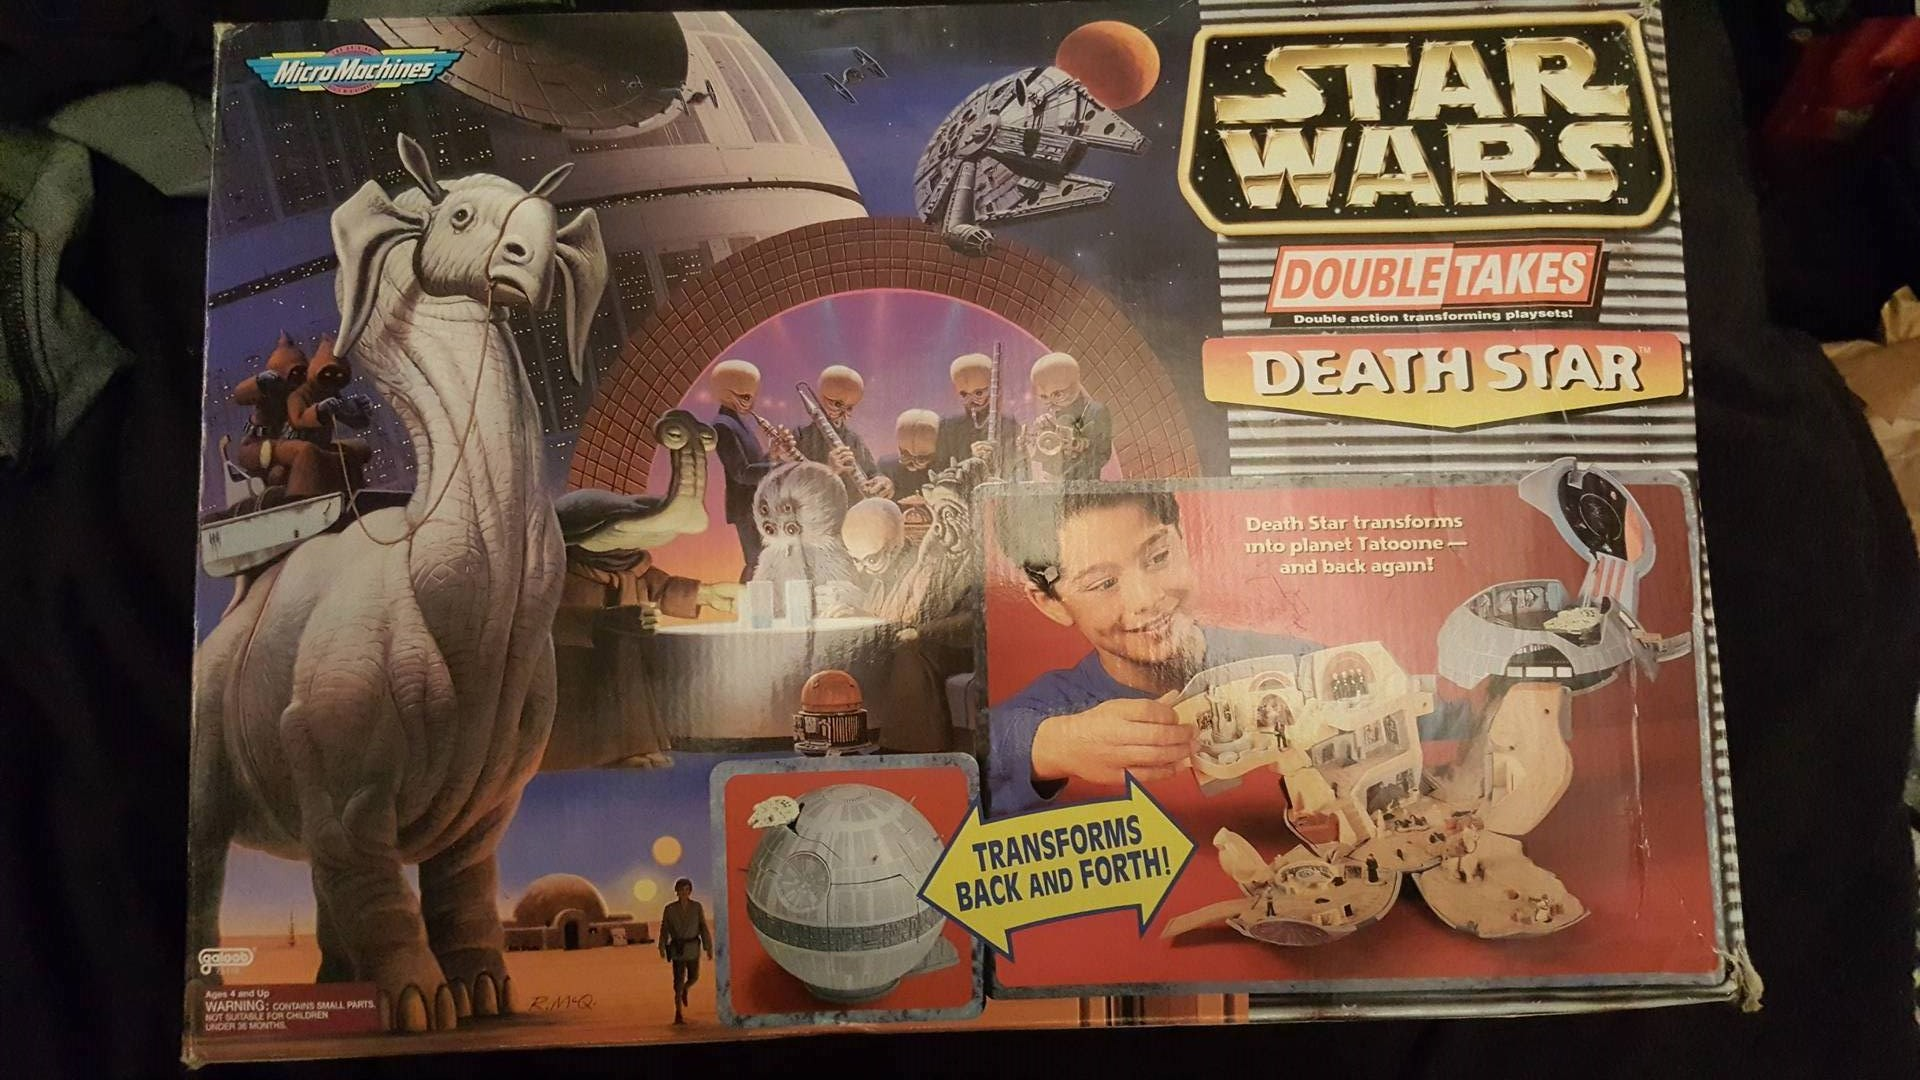 Spielzeug Micro Machines Star Wars Womp Rat Triadecont Com Br Well you're in luck, because here they come. spielzeug micro machines star wars womp